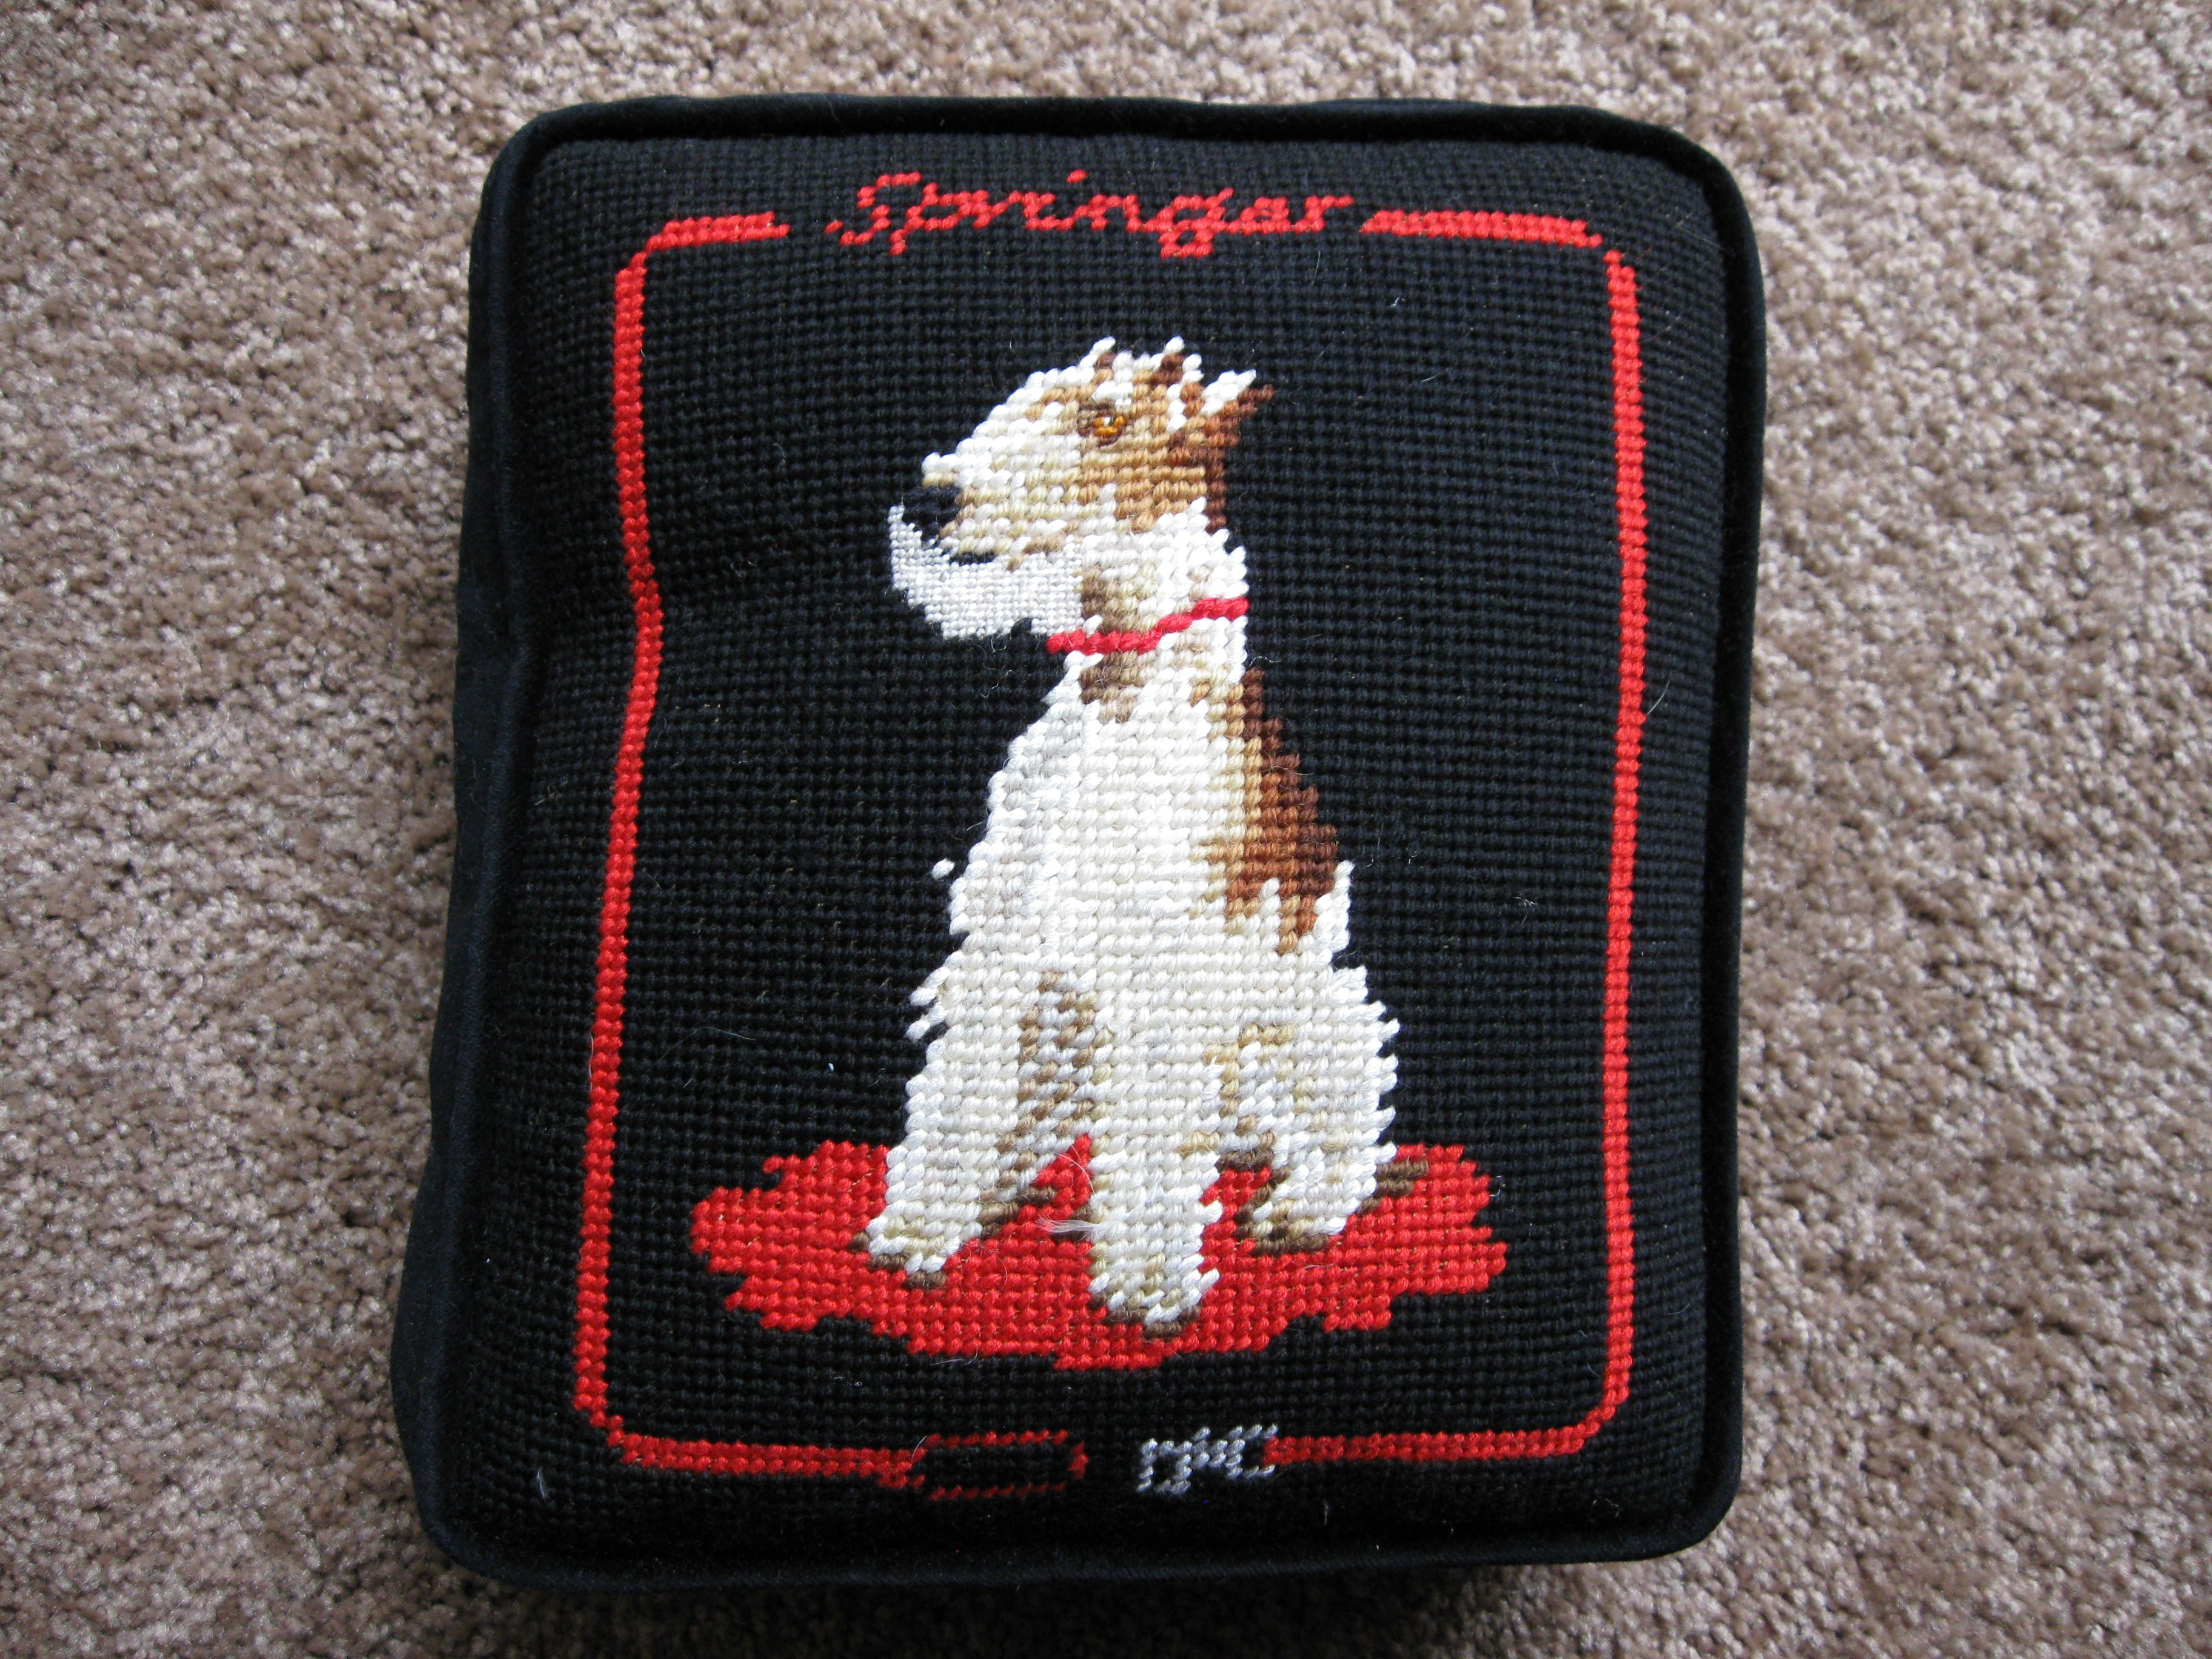 Dogs Sunset Silhouette Needlepoint Kit or Canvas